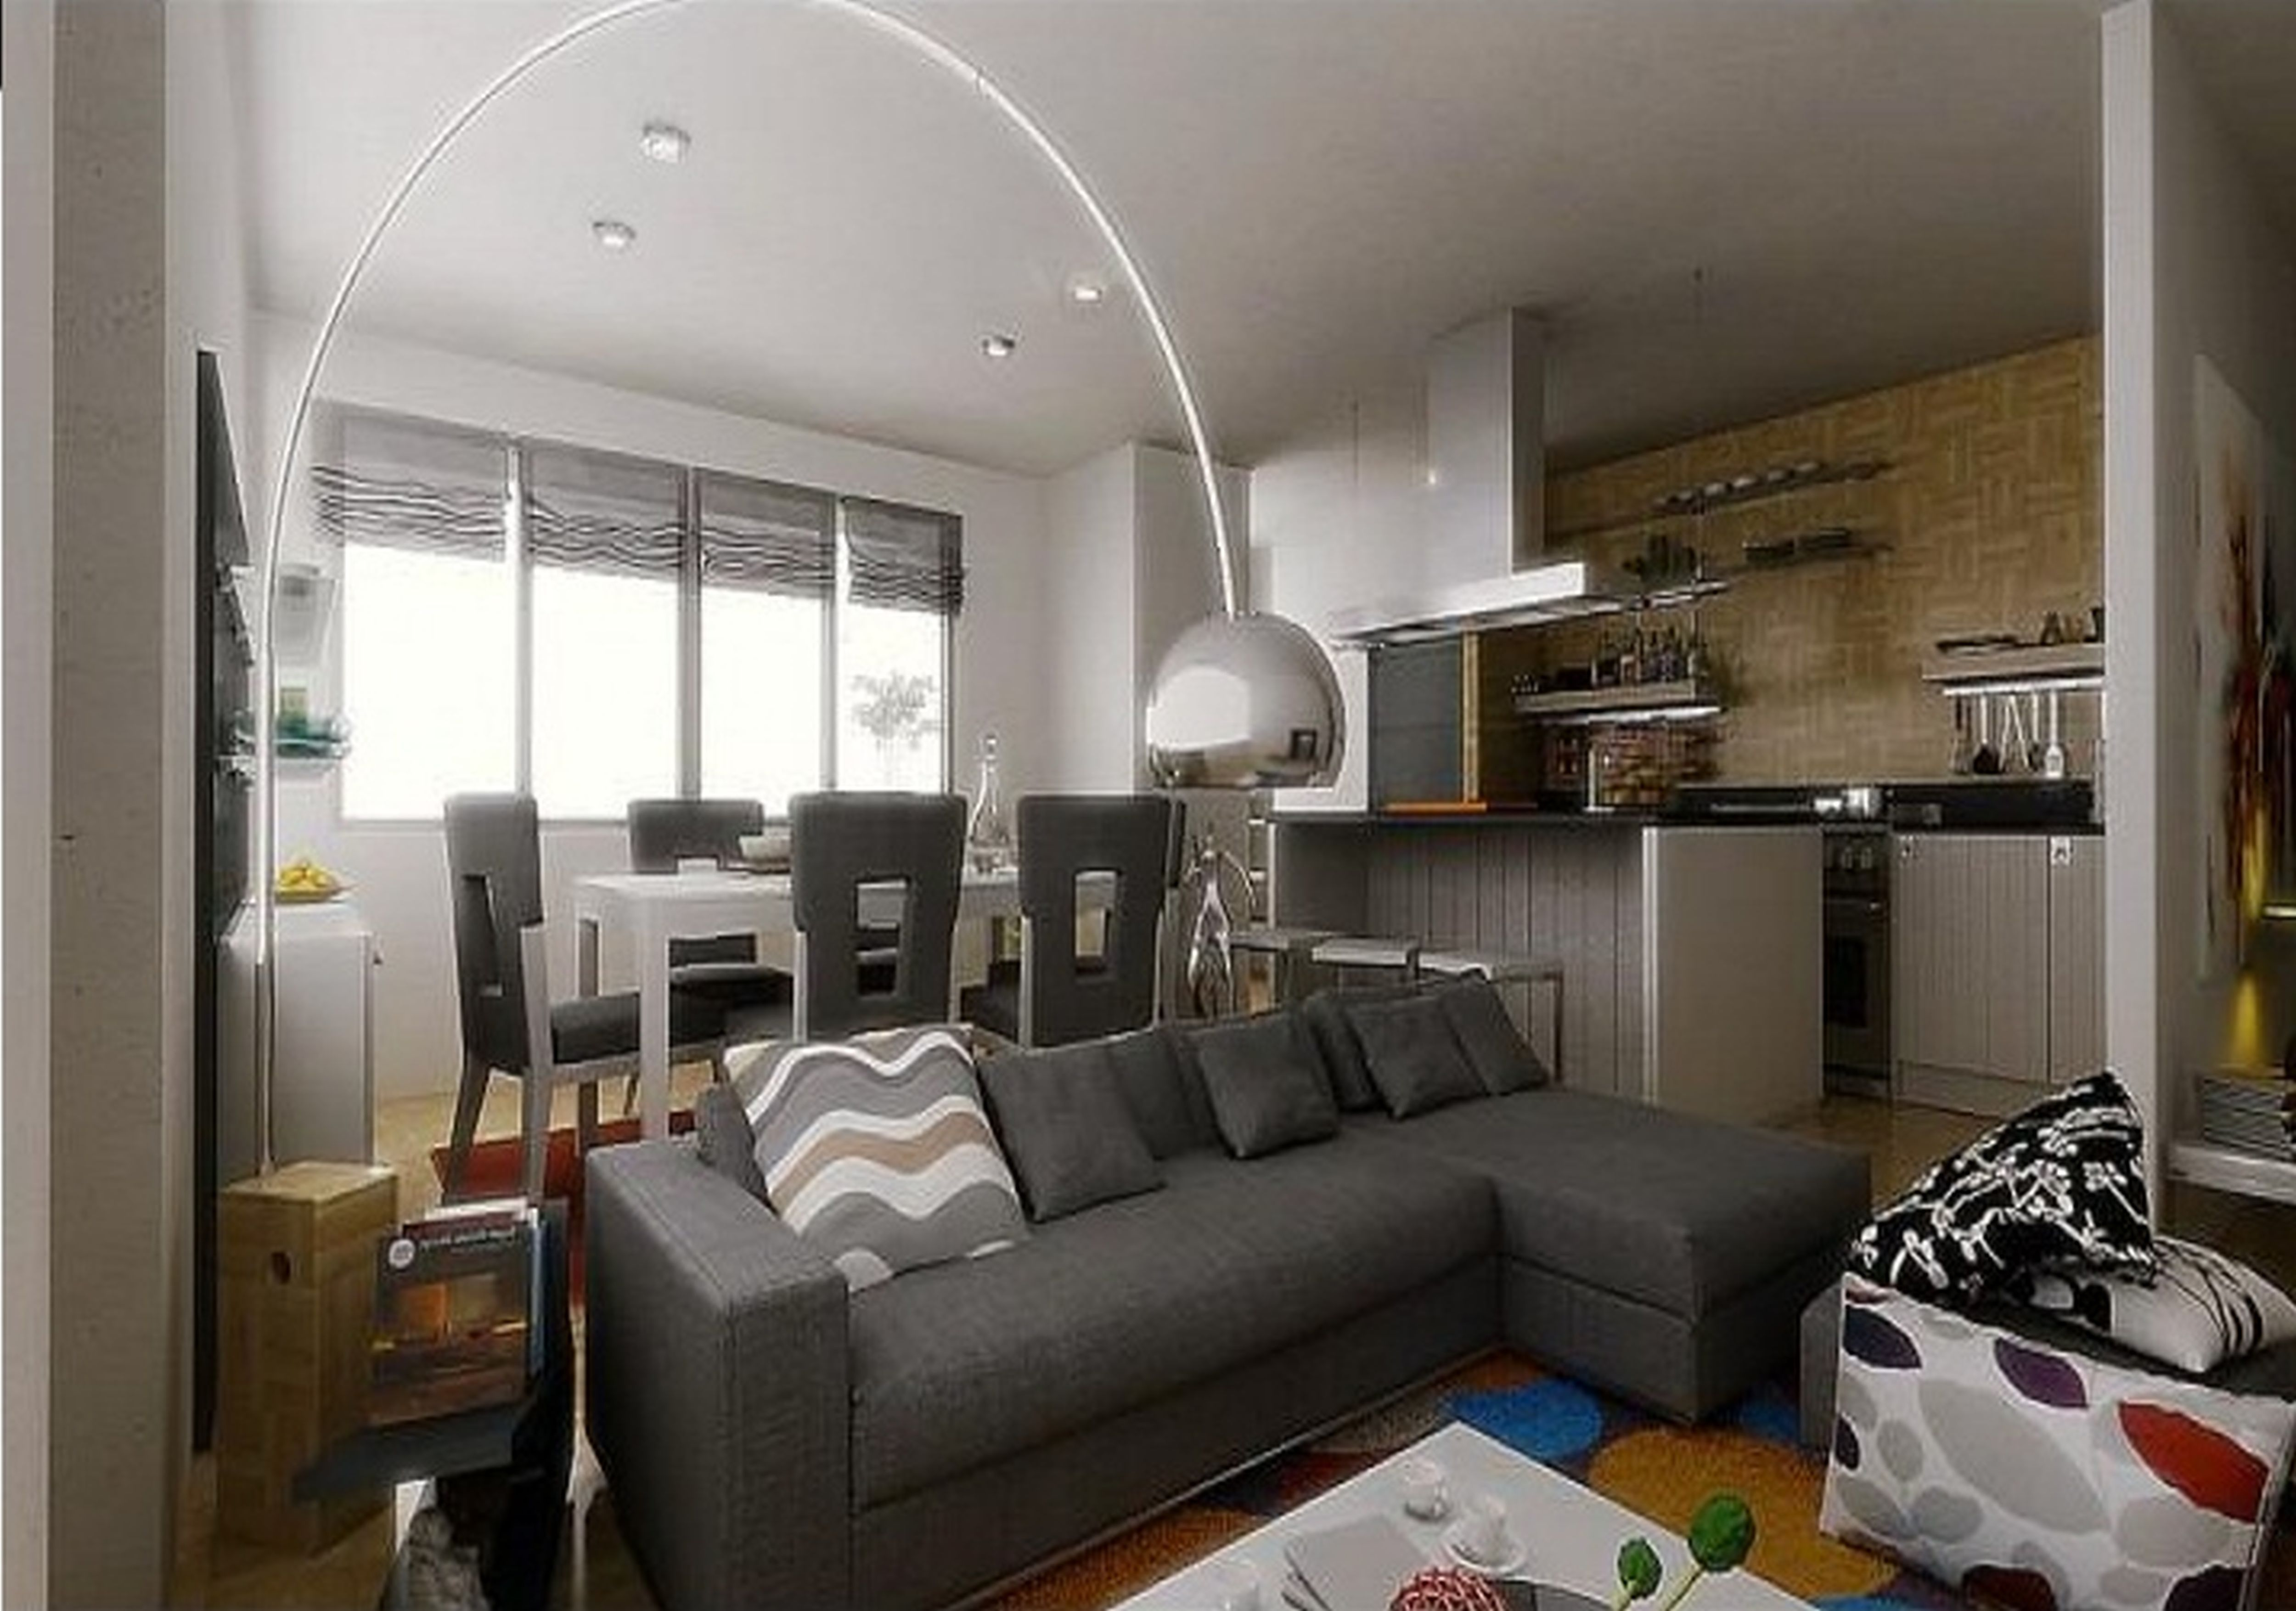 Charmant Small Apartment Living Room Ideas One Best Image Furniture For Tiny Spaces